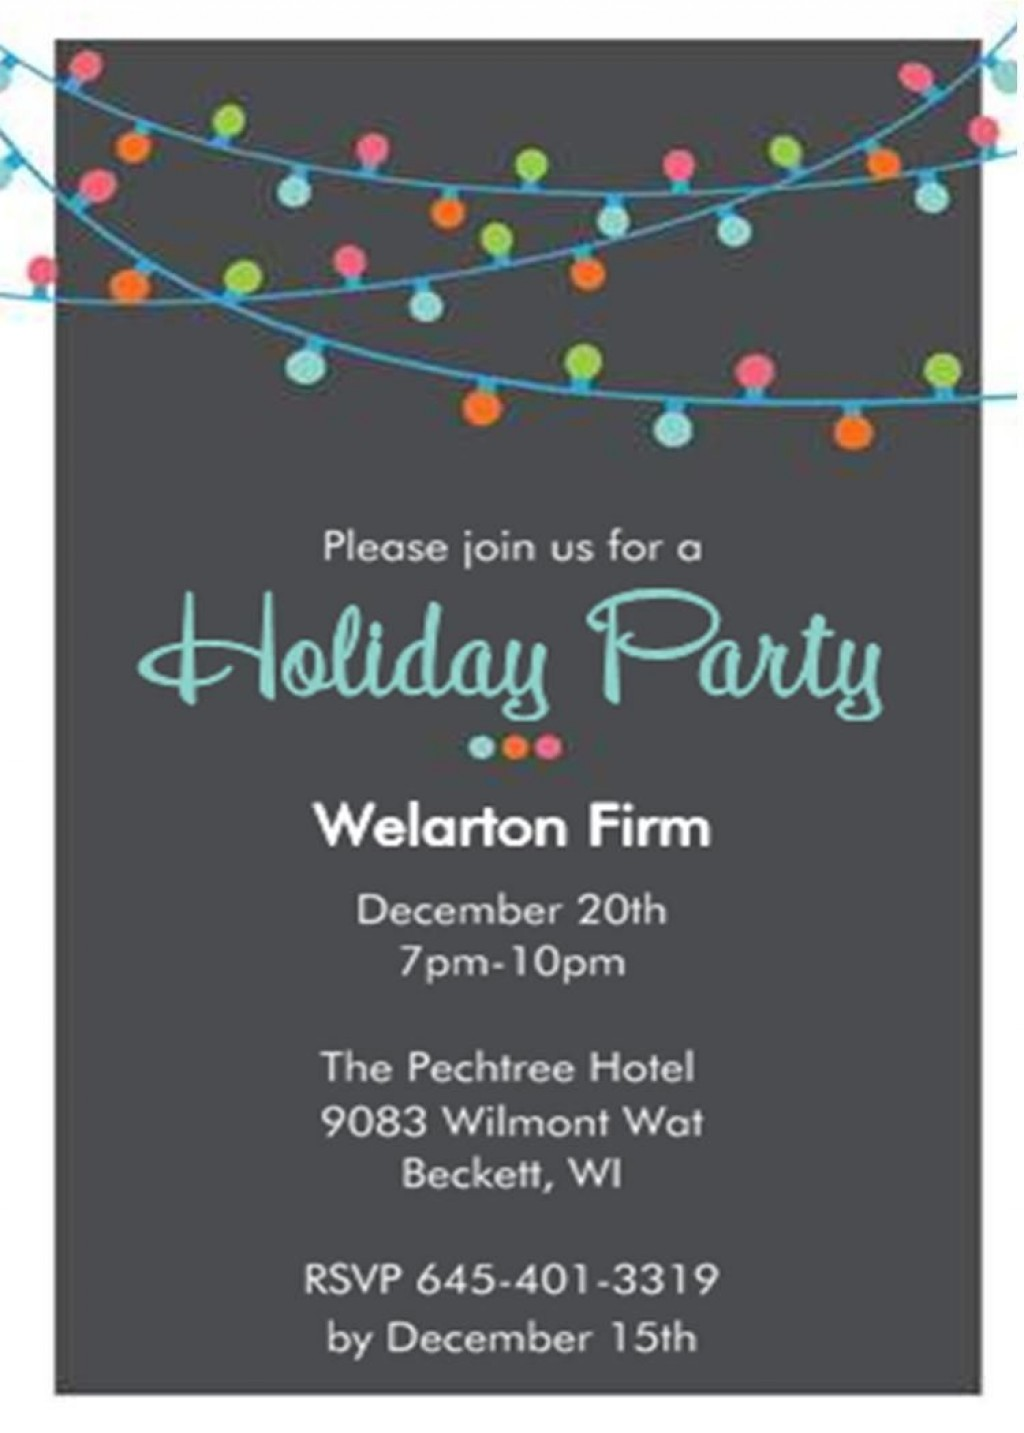 001 Incredible Office Christma Party Invitation Wording Sample Image  Holiday ExampleLarge